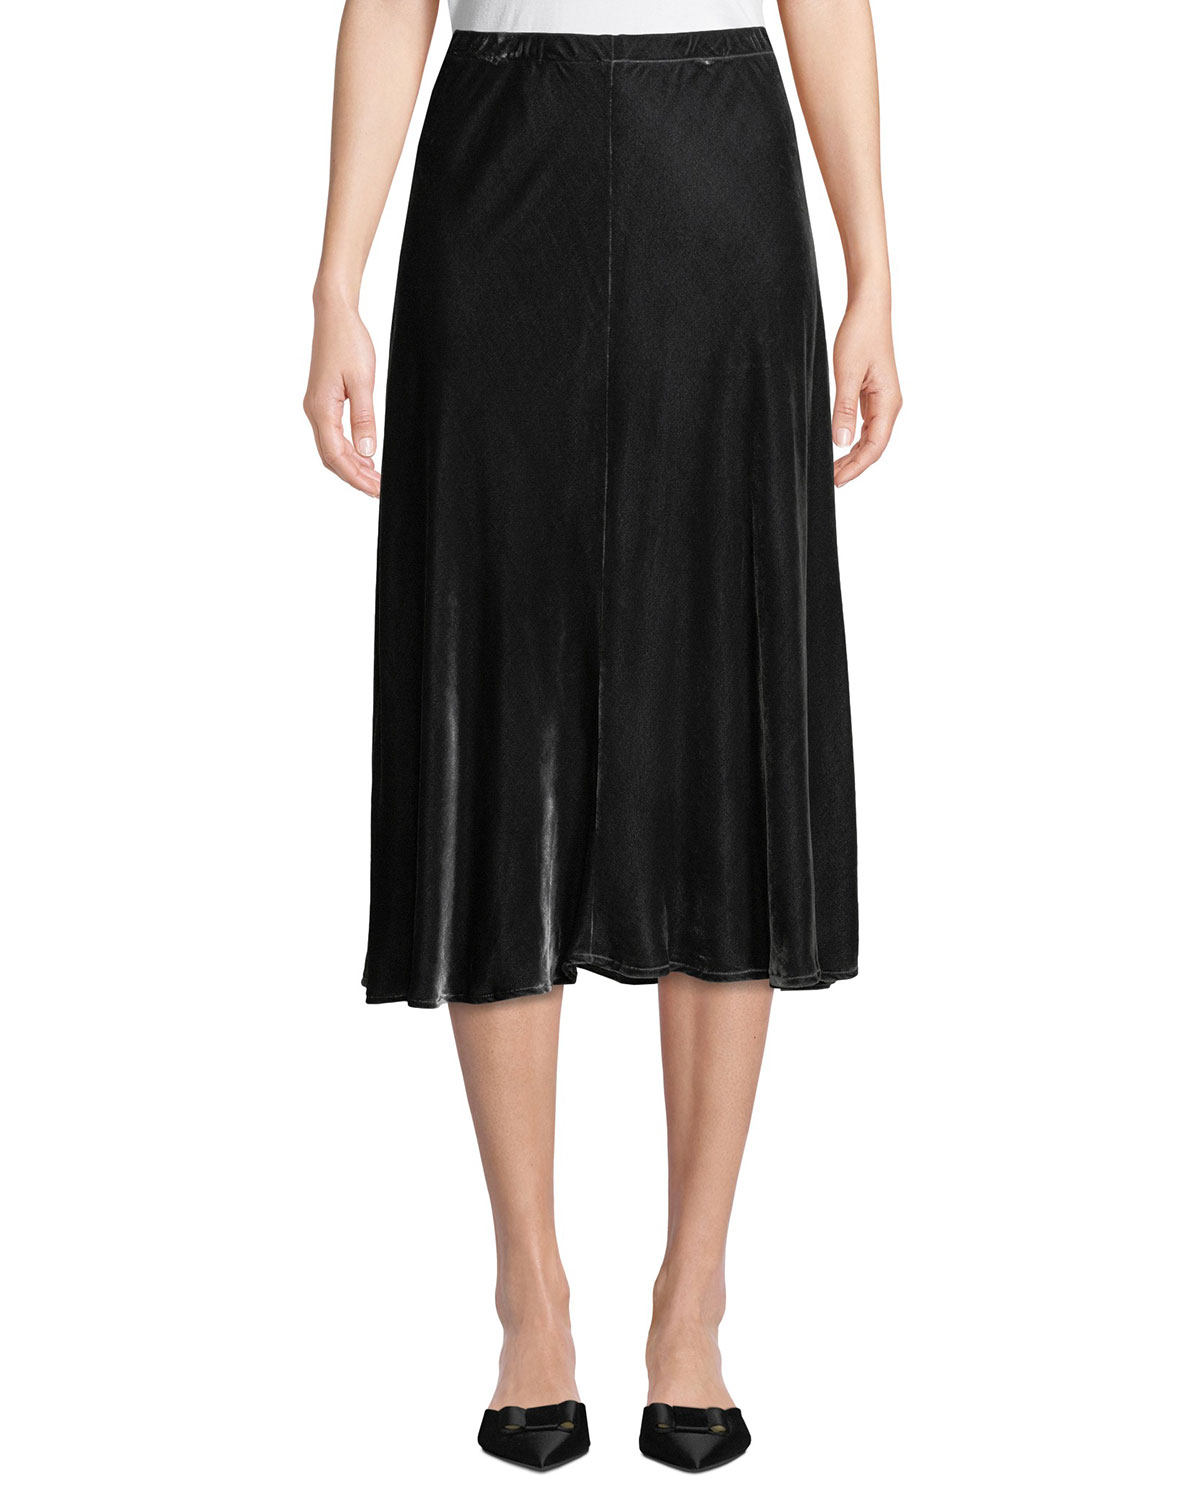 649d9ecfe3 eileen fisher midi skirts for women - Buy best women's eileen fisher midi  skirts on Cools.com Shop